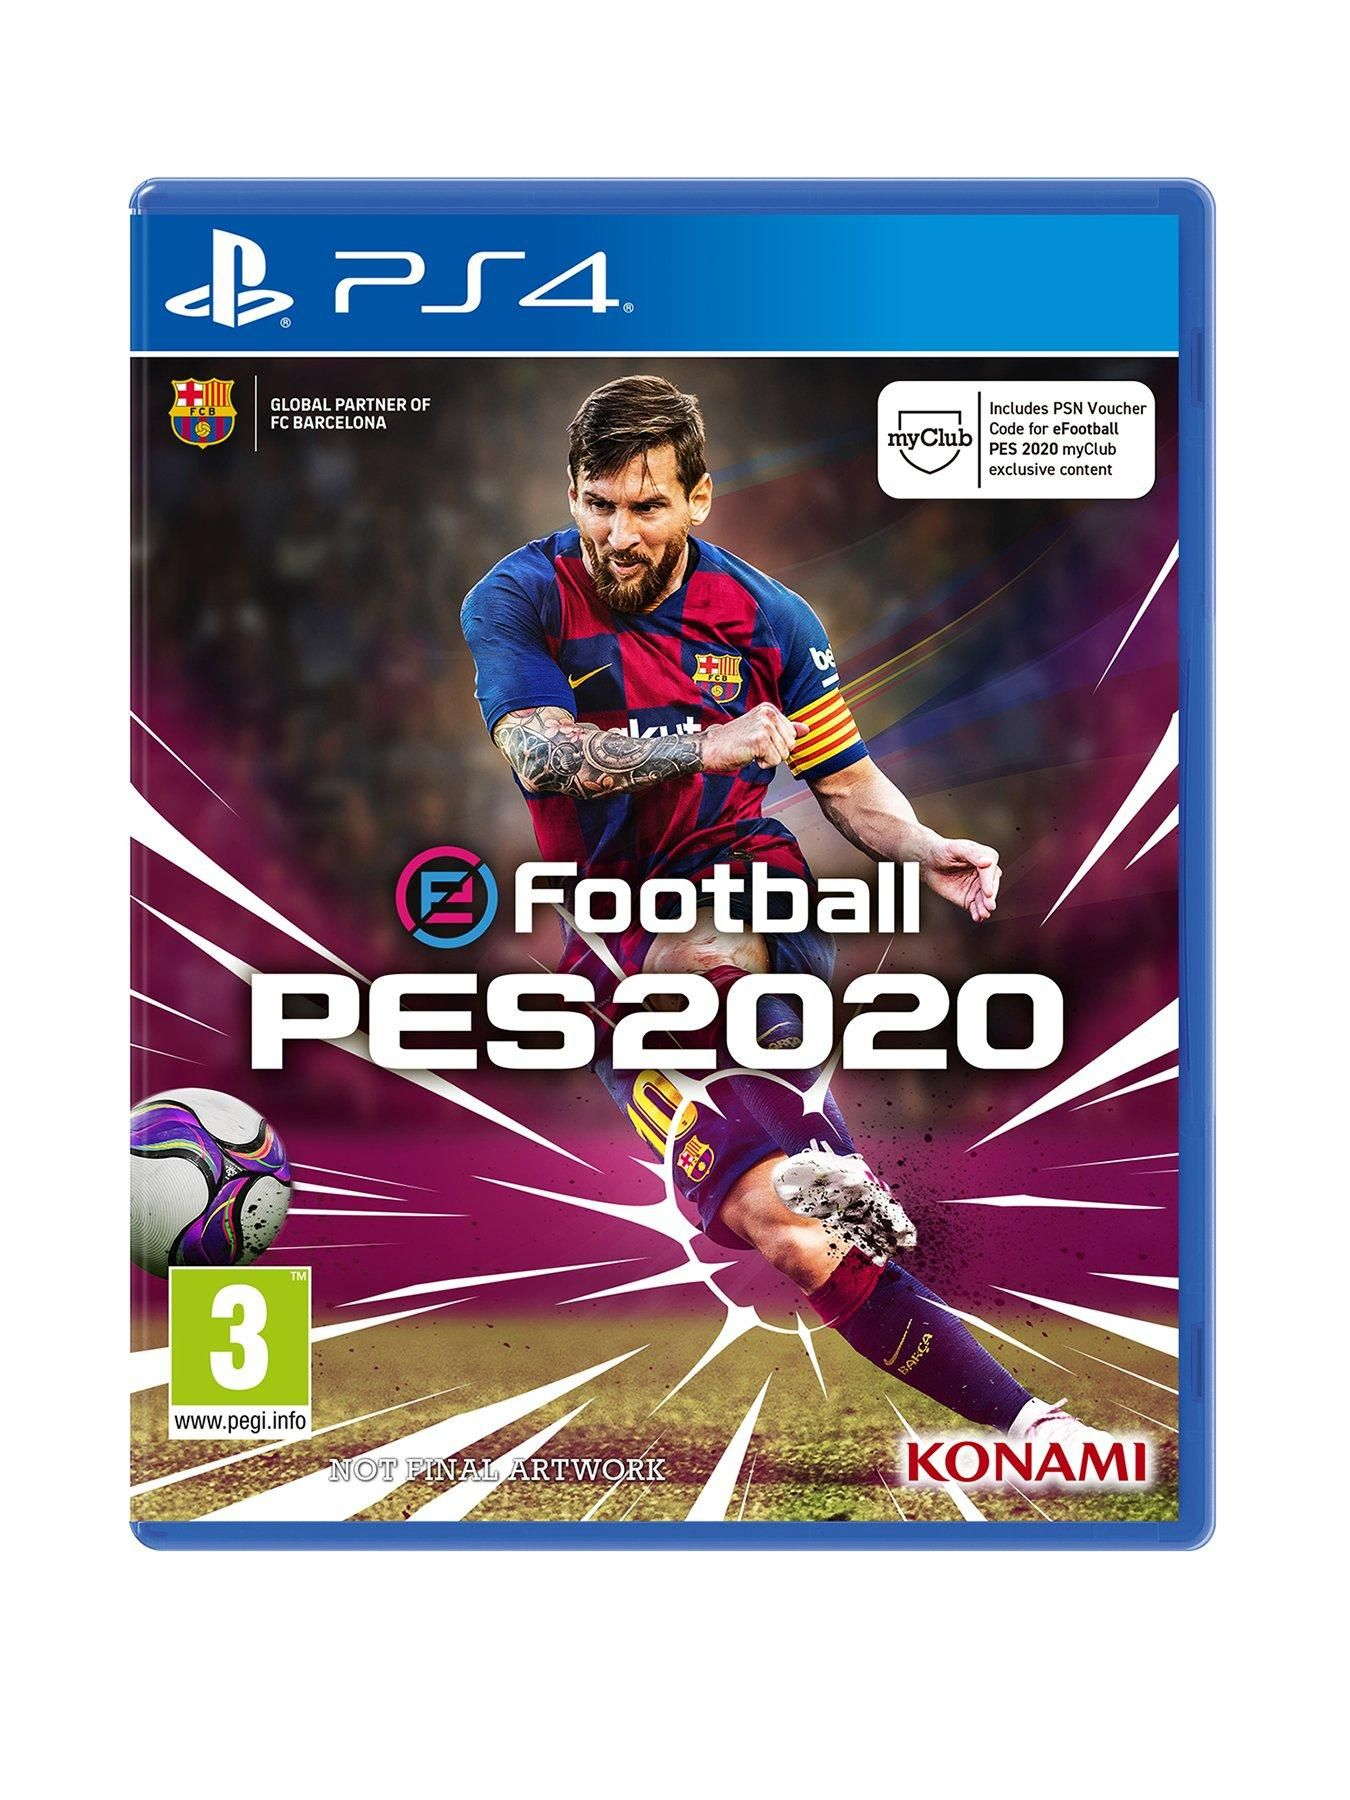 Playstation 4 Efootball Pes 2020 Ps4 In One Colour In 2020 Ps4